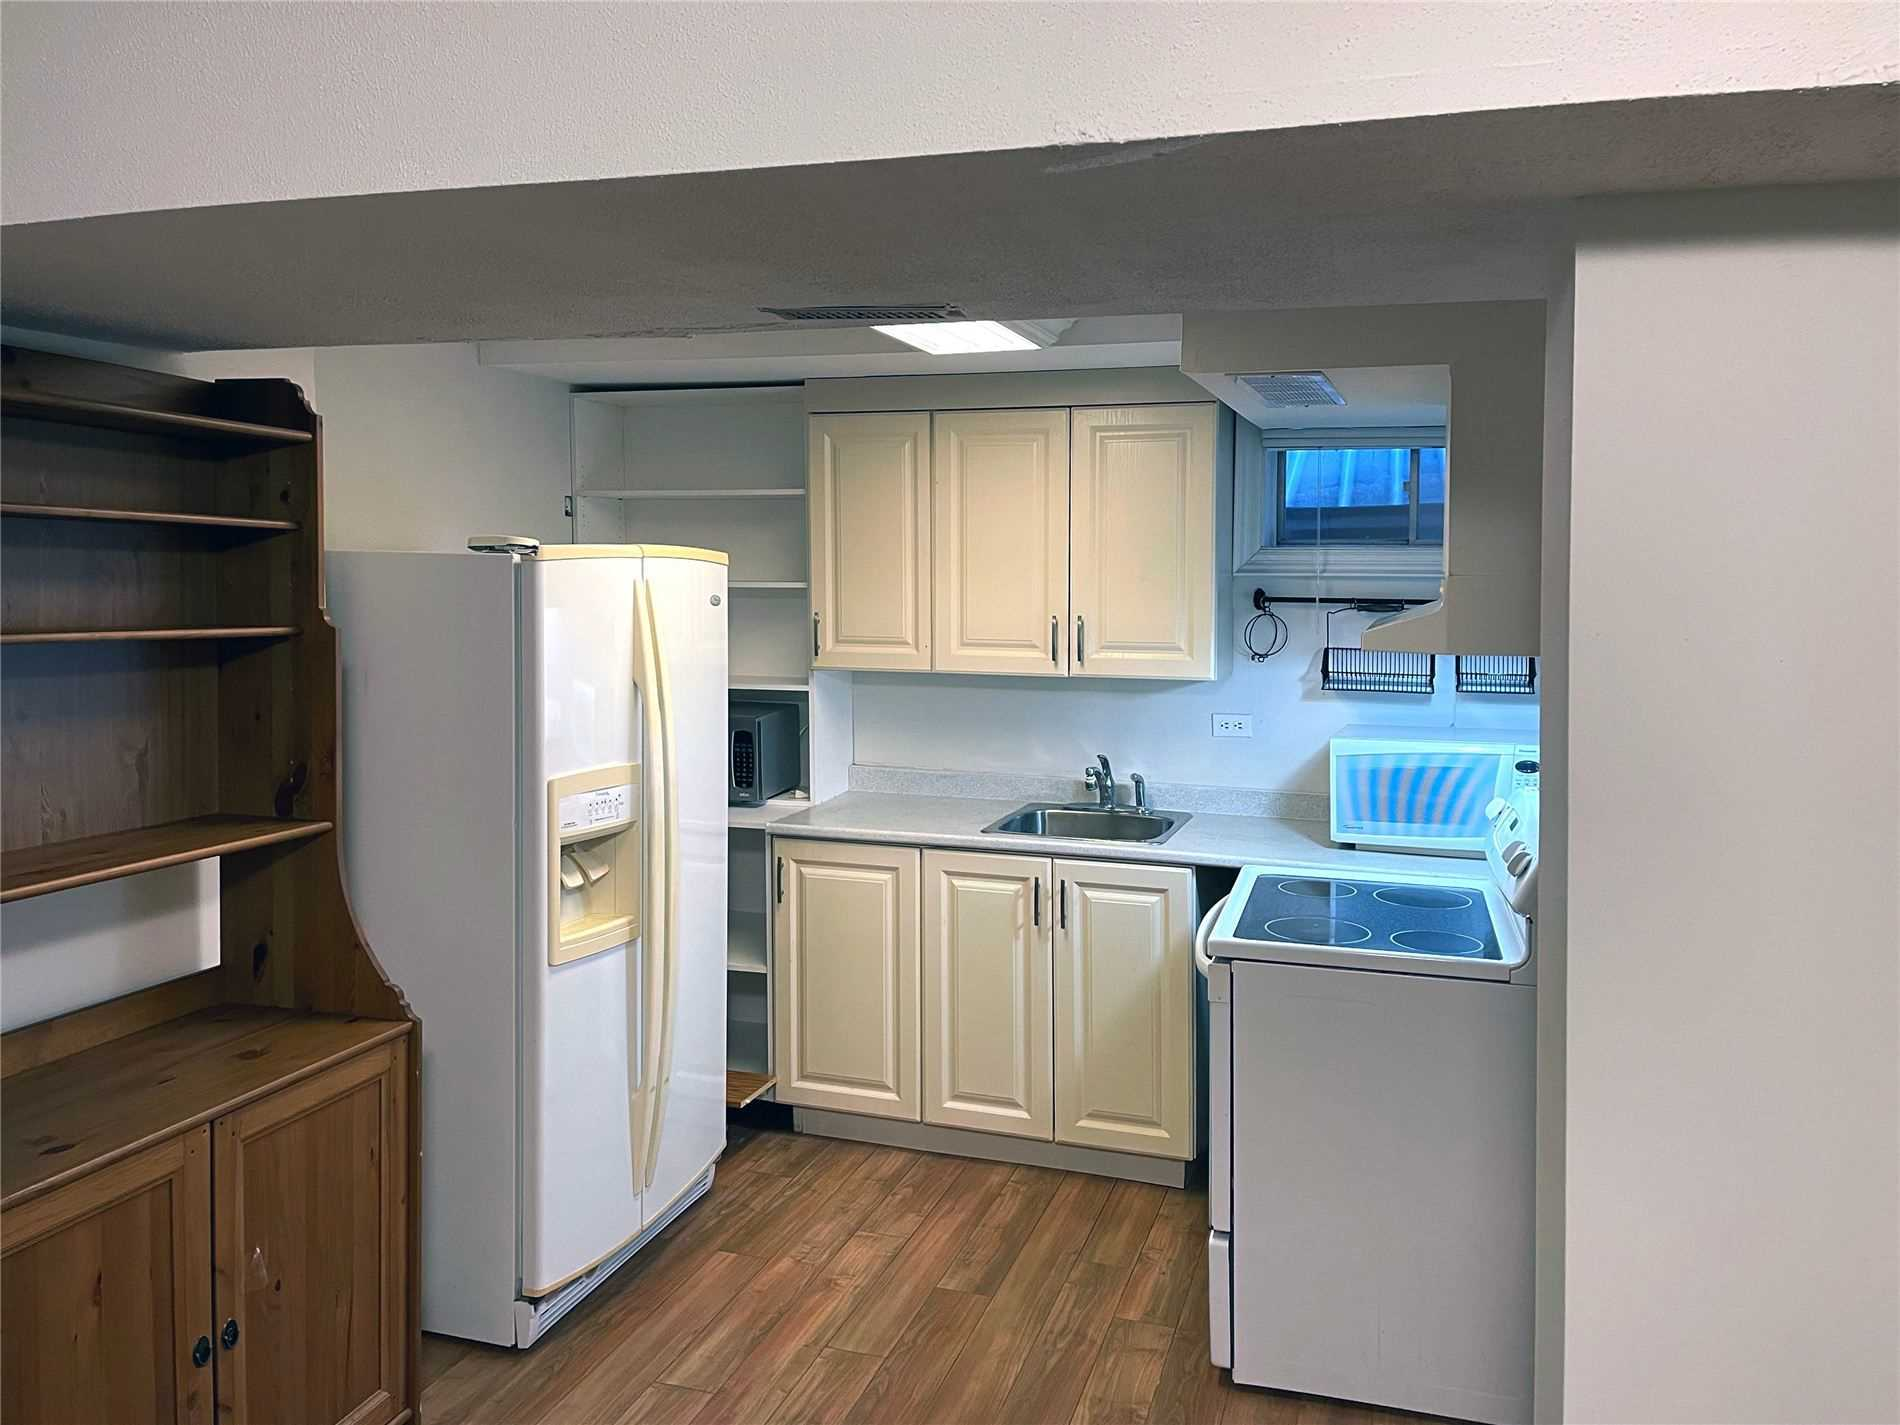 Image 4 of 9 showing inside of 1 Bedroom Detached 2-Storey for Lease at 20 Mcnairn Crt, Richmond Hill L4C5X1